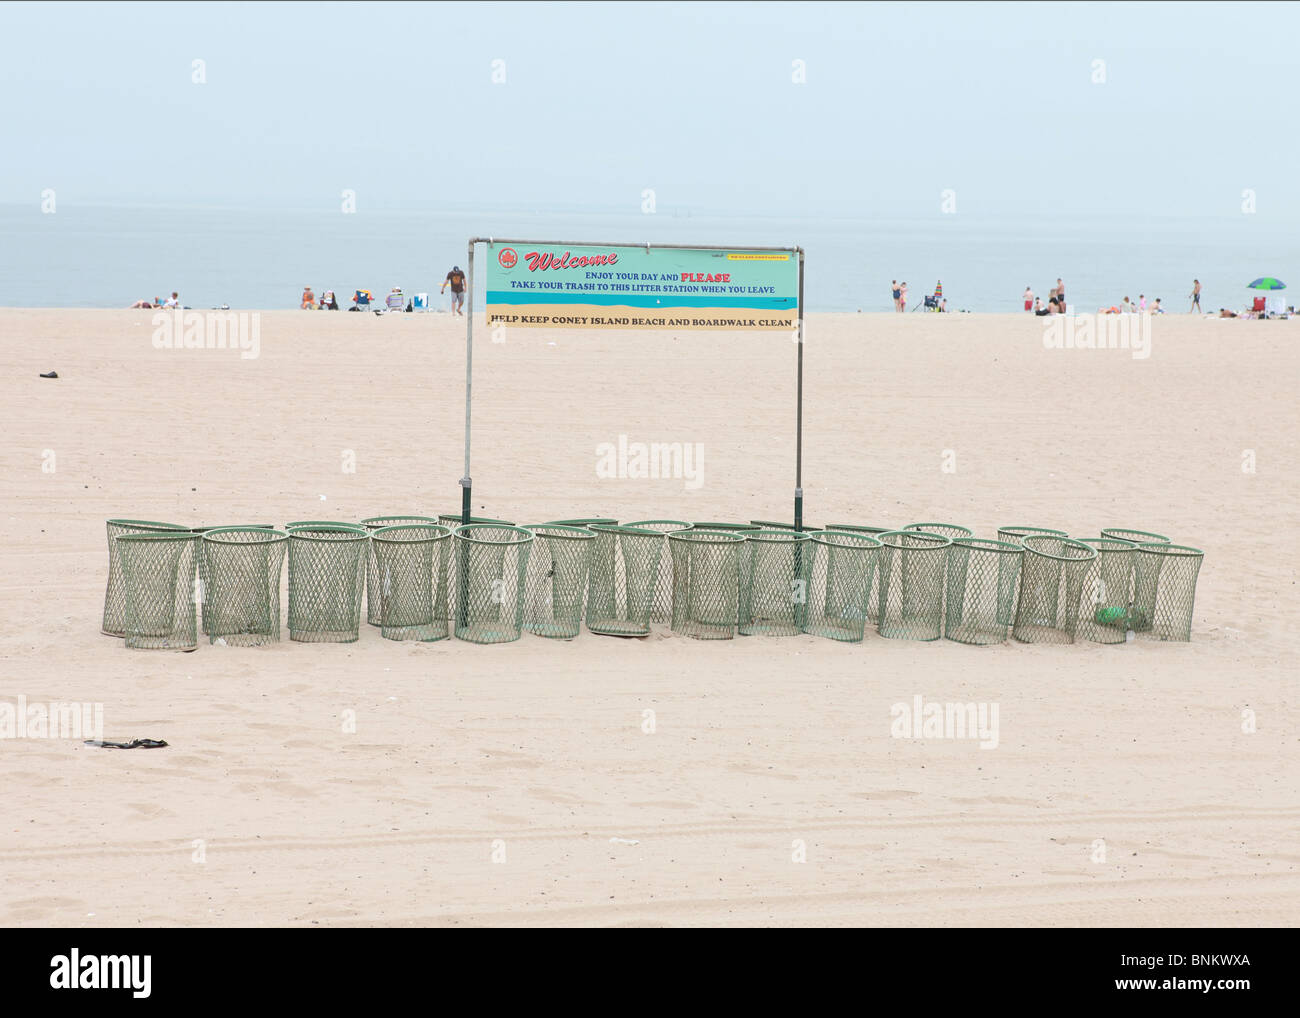 beach trash cans - Stock Image